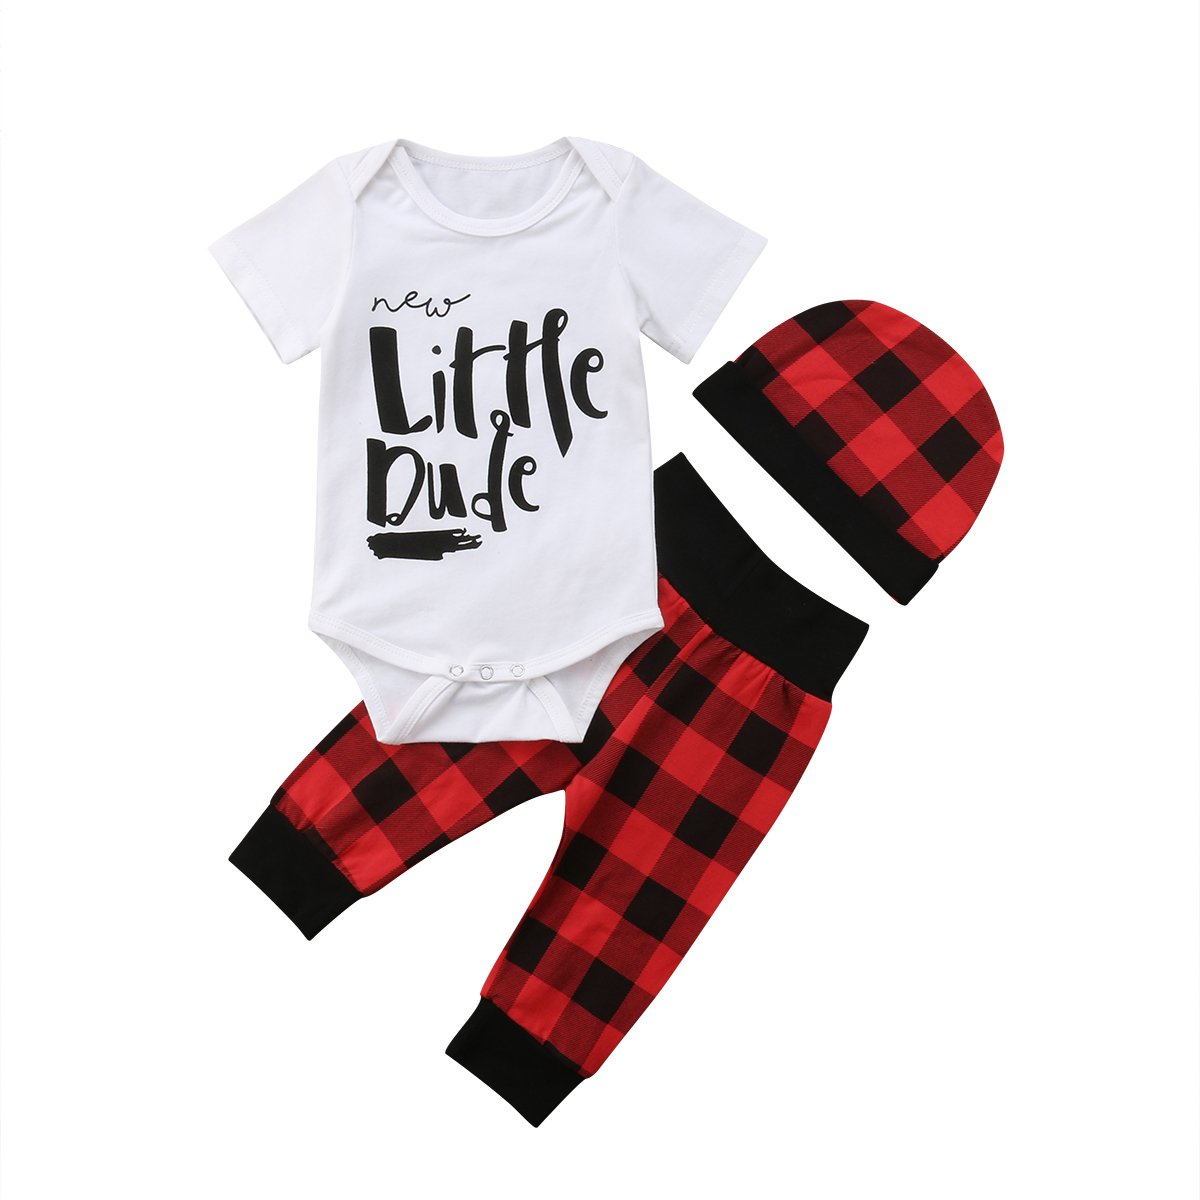 8627e2bb367b 2 Styles: Baby Bear and arrow / new Little Dude print shirt tops+leggings  with matching hat. According to customer feedback, outfit ...